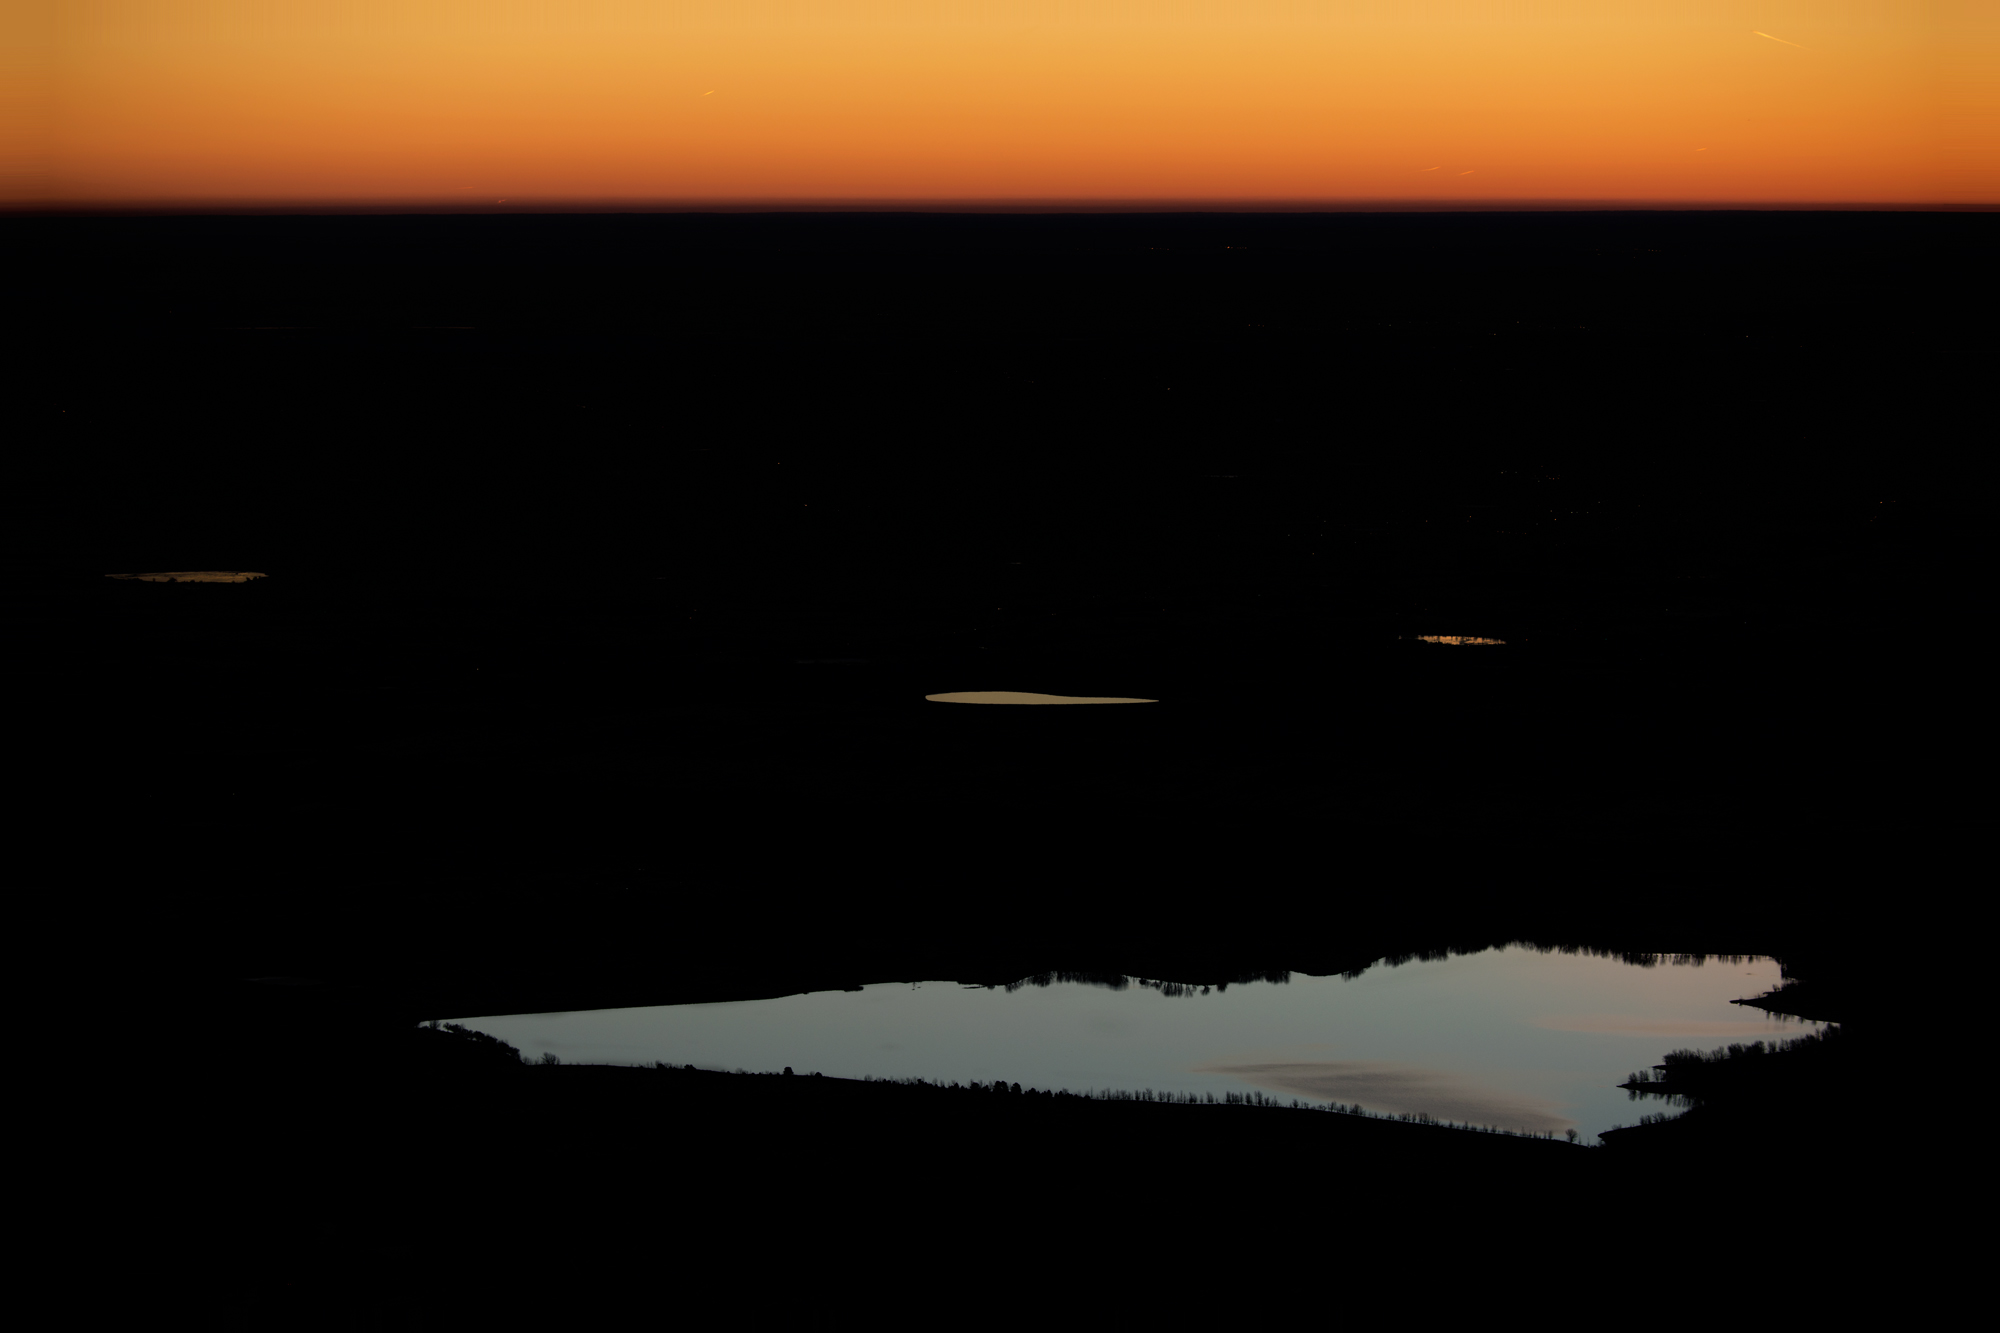 Dawn On the Plains. From Bear Peak, Boulder, Colorado, 2014